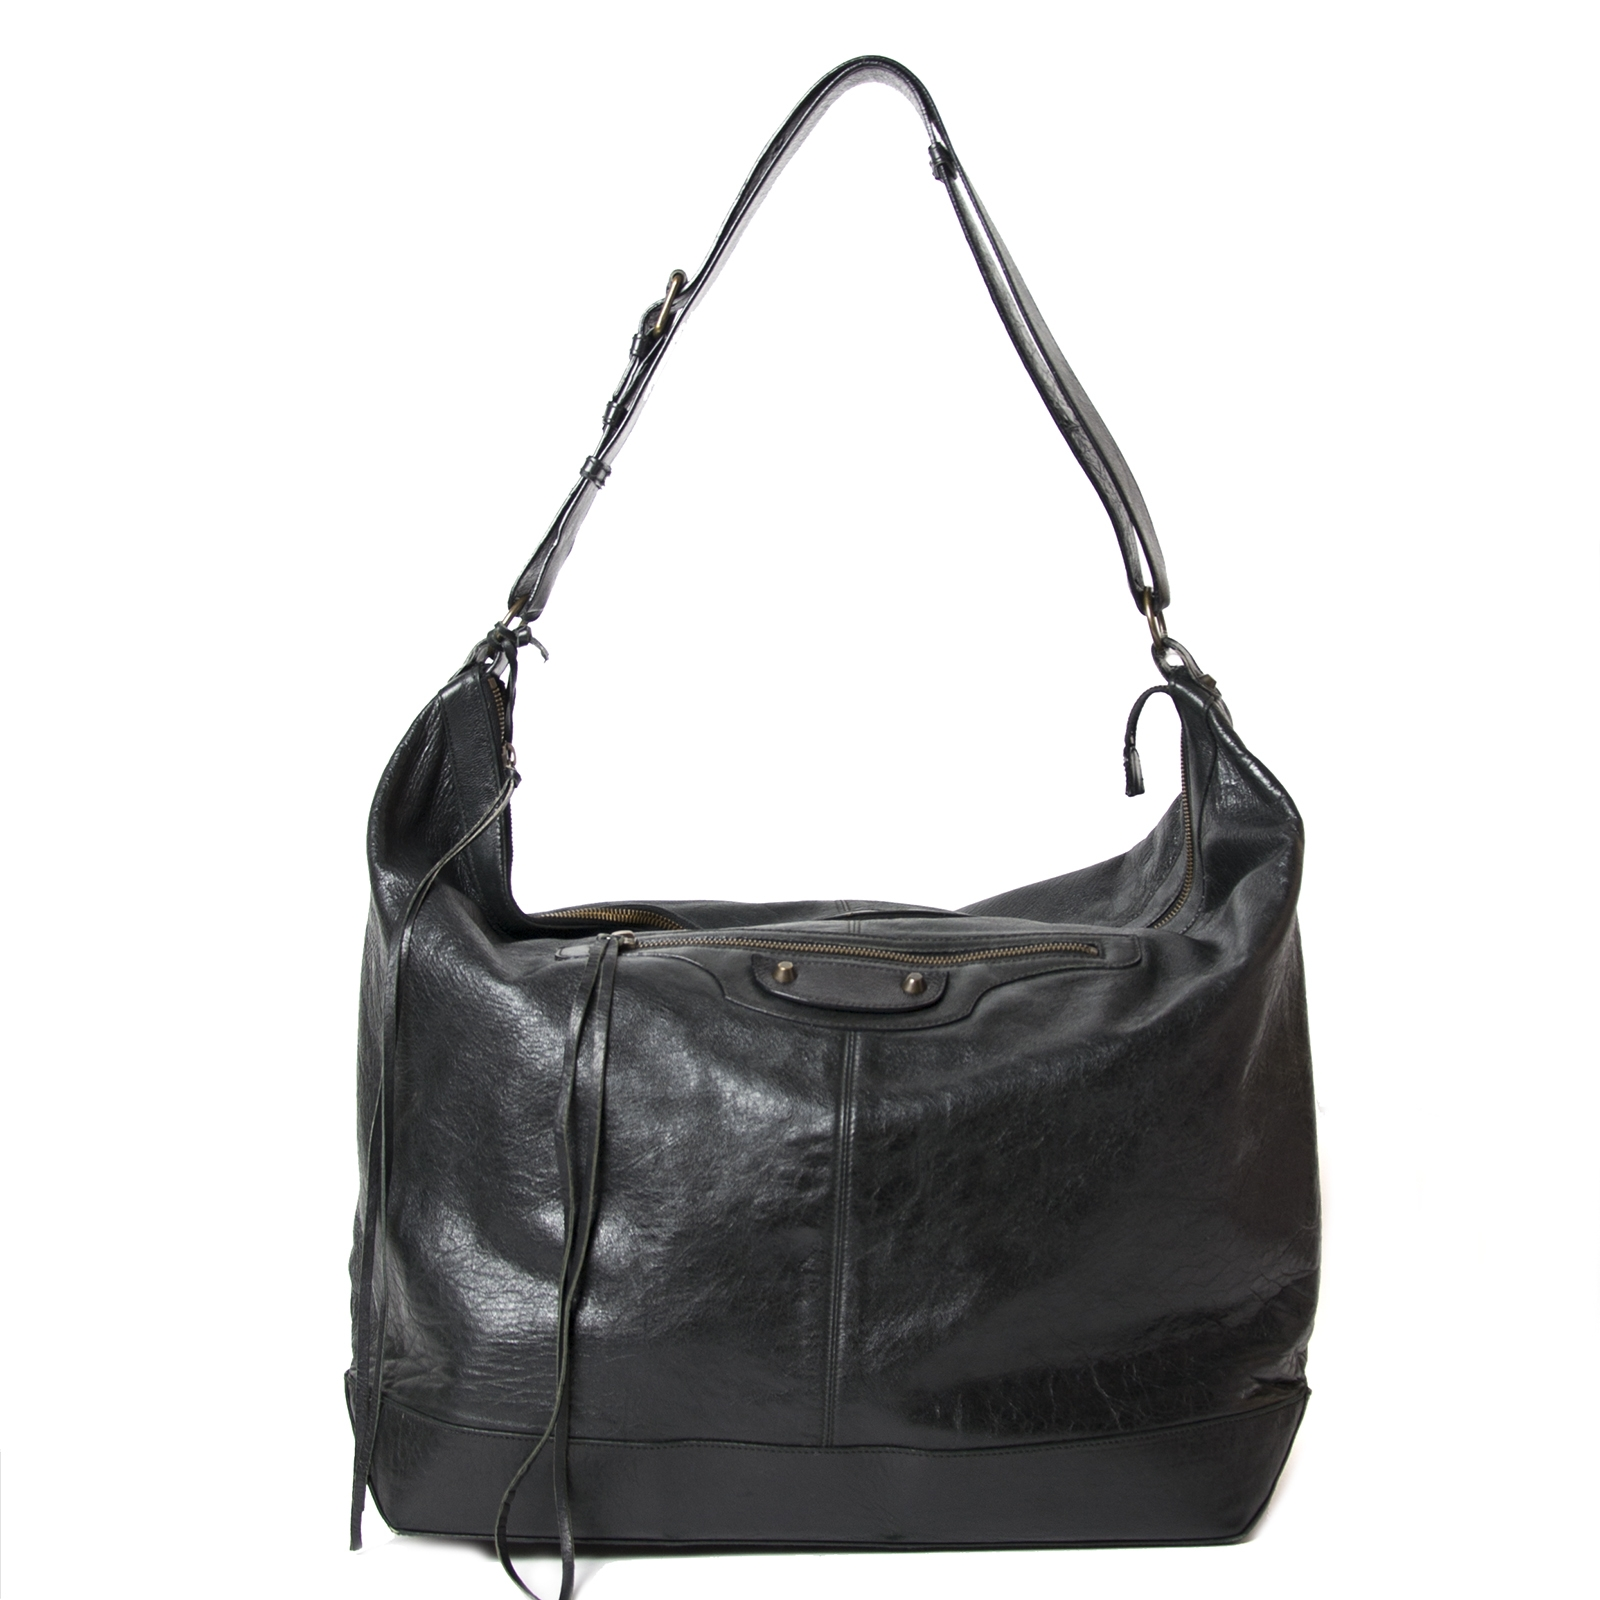 Buy your authentic Balenciaga Black Courier Bag for the best price at Labellov kopen en verkopen